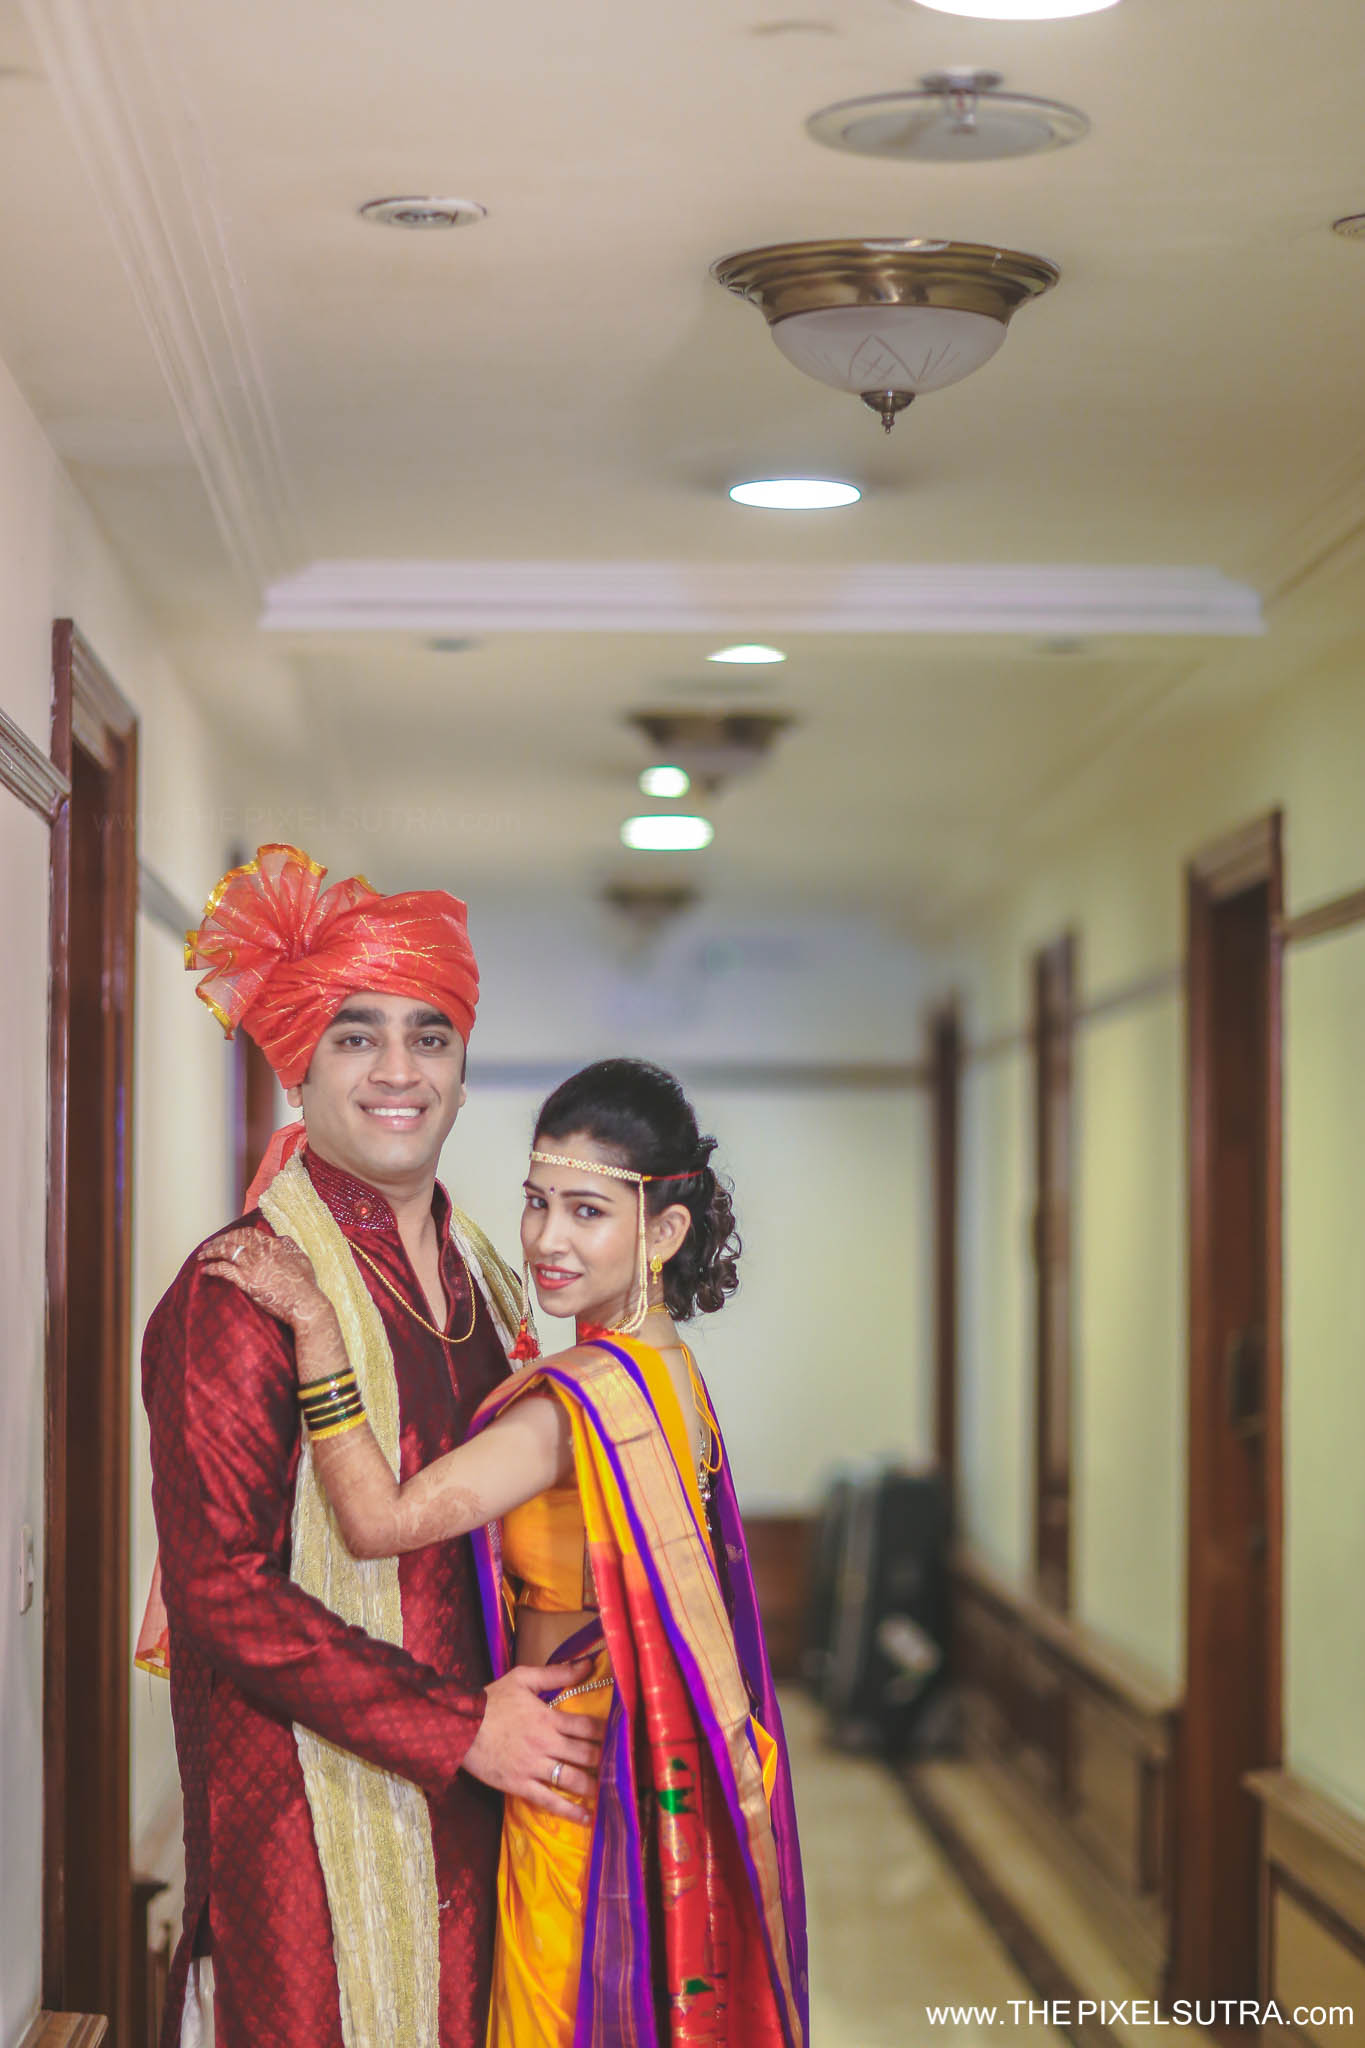 The Pixel Sutra Nachiket x Priyanka Candid Wedding photographer Mumbai Best  (25).jpg